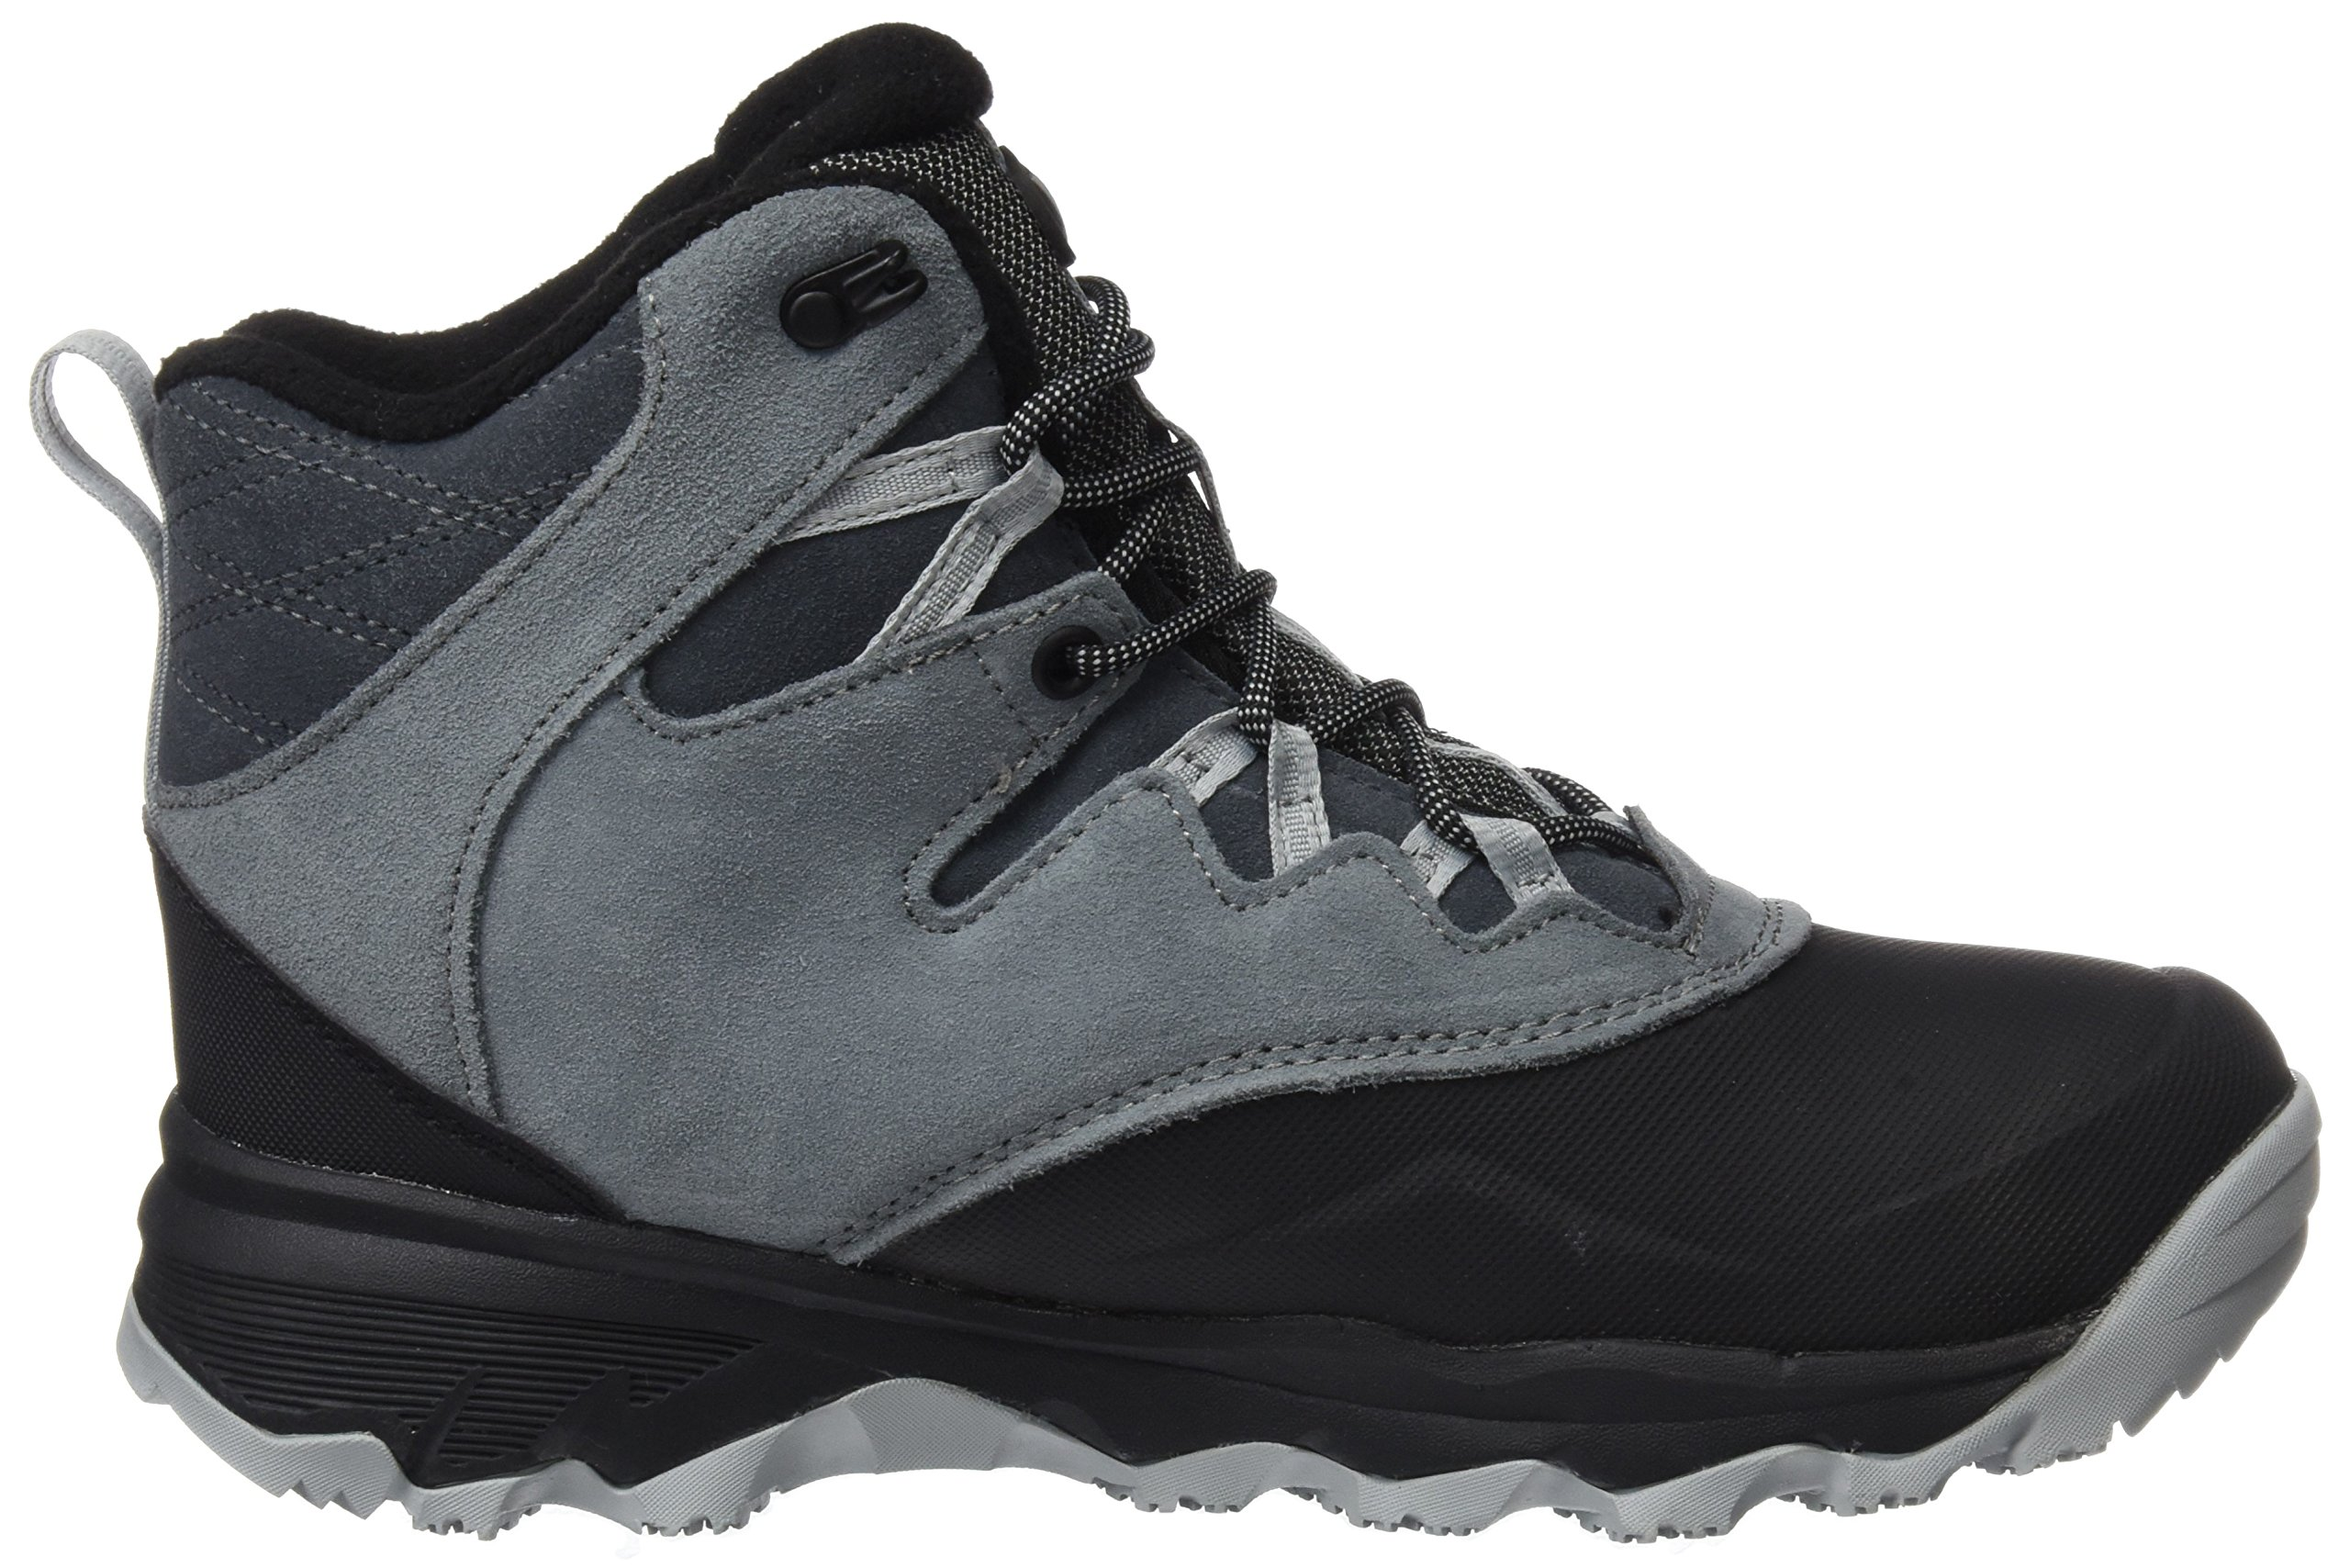 """91NEjcxmjOL - Merrell Men's Thermo Shiver 6"""" Waterproof High Rise Hiking Boots"""